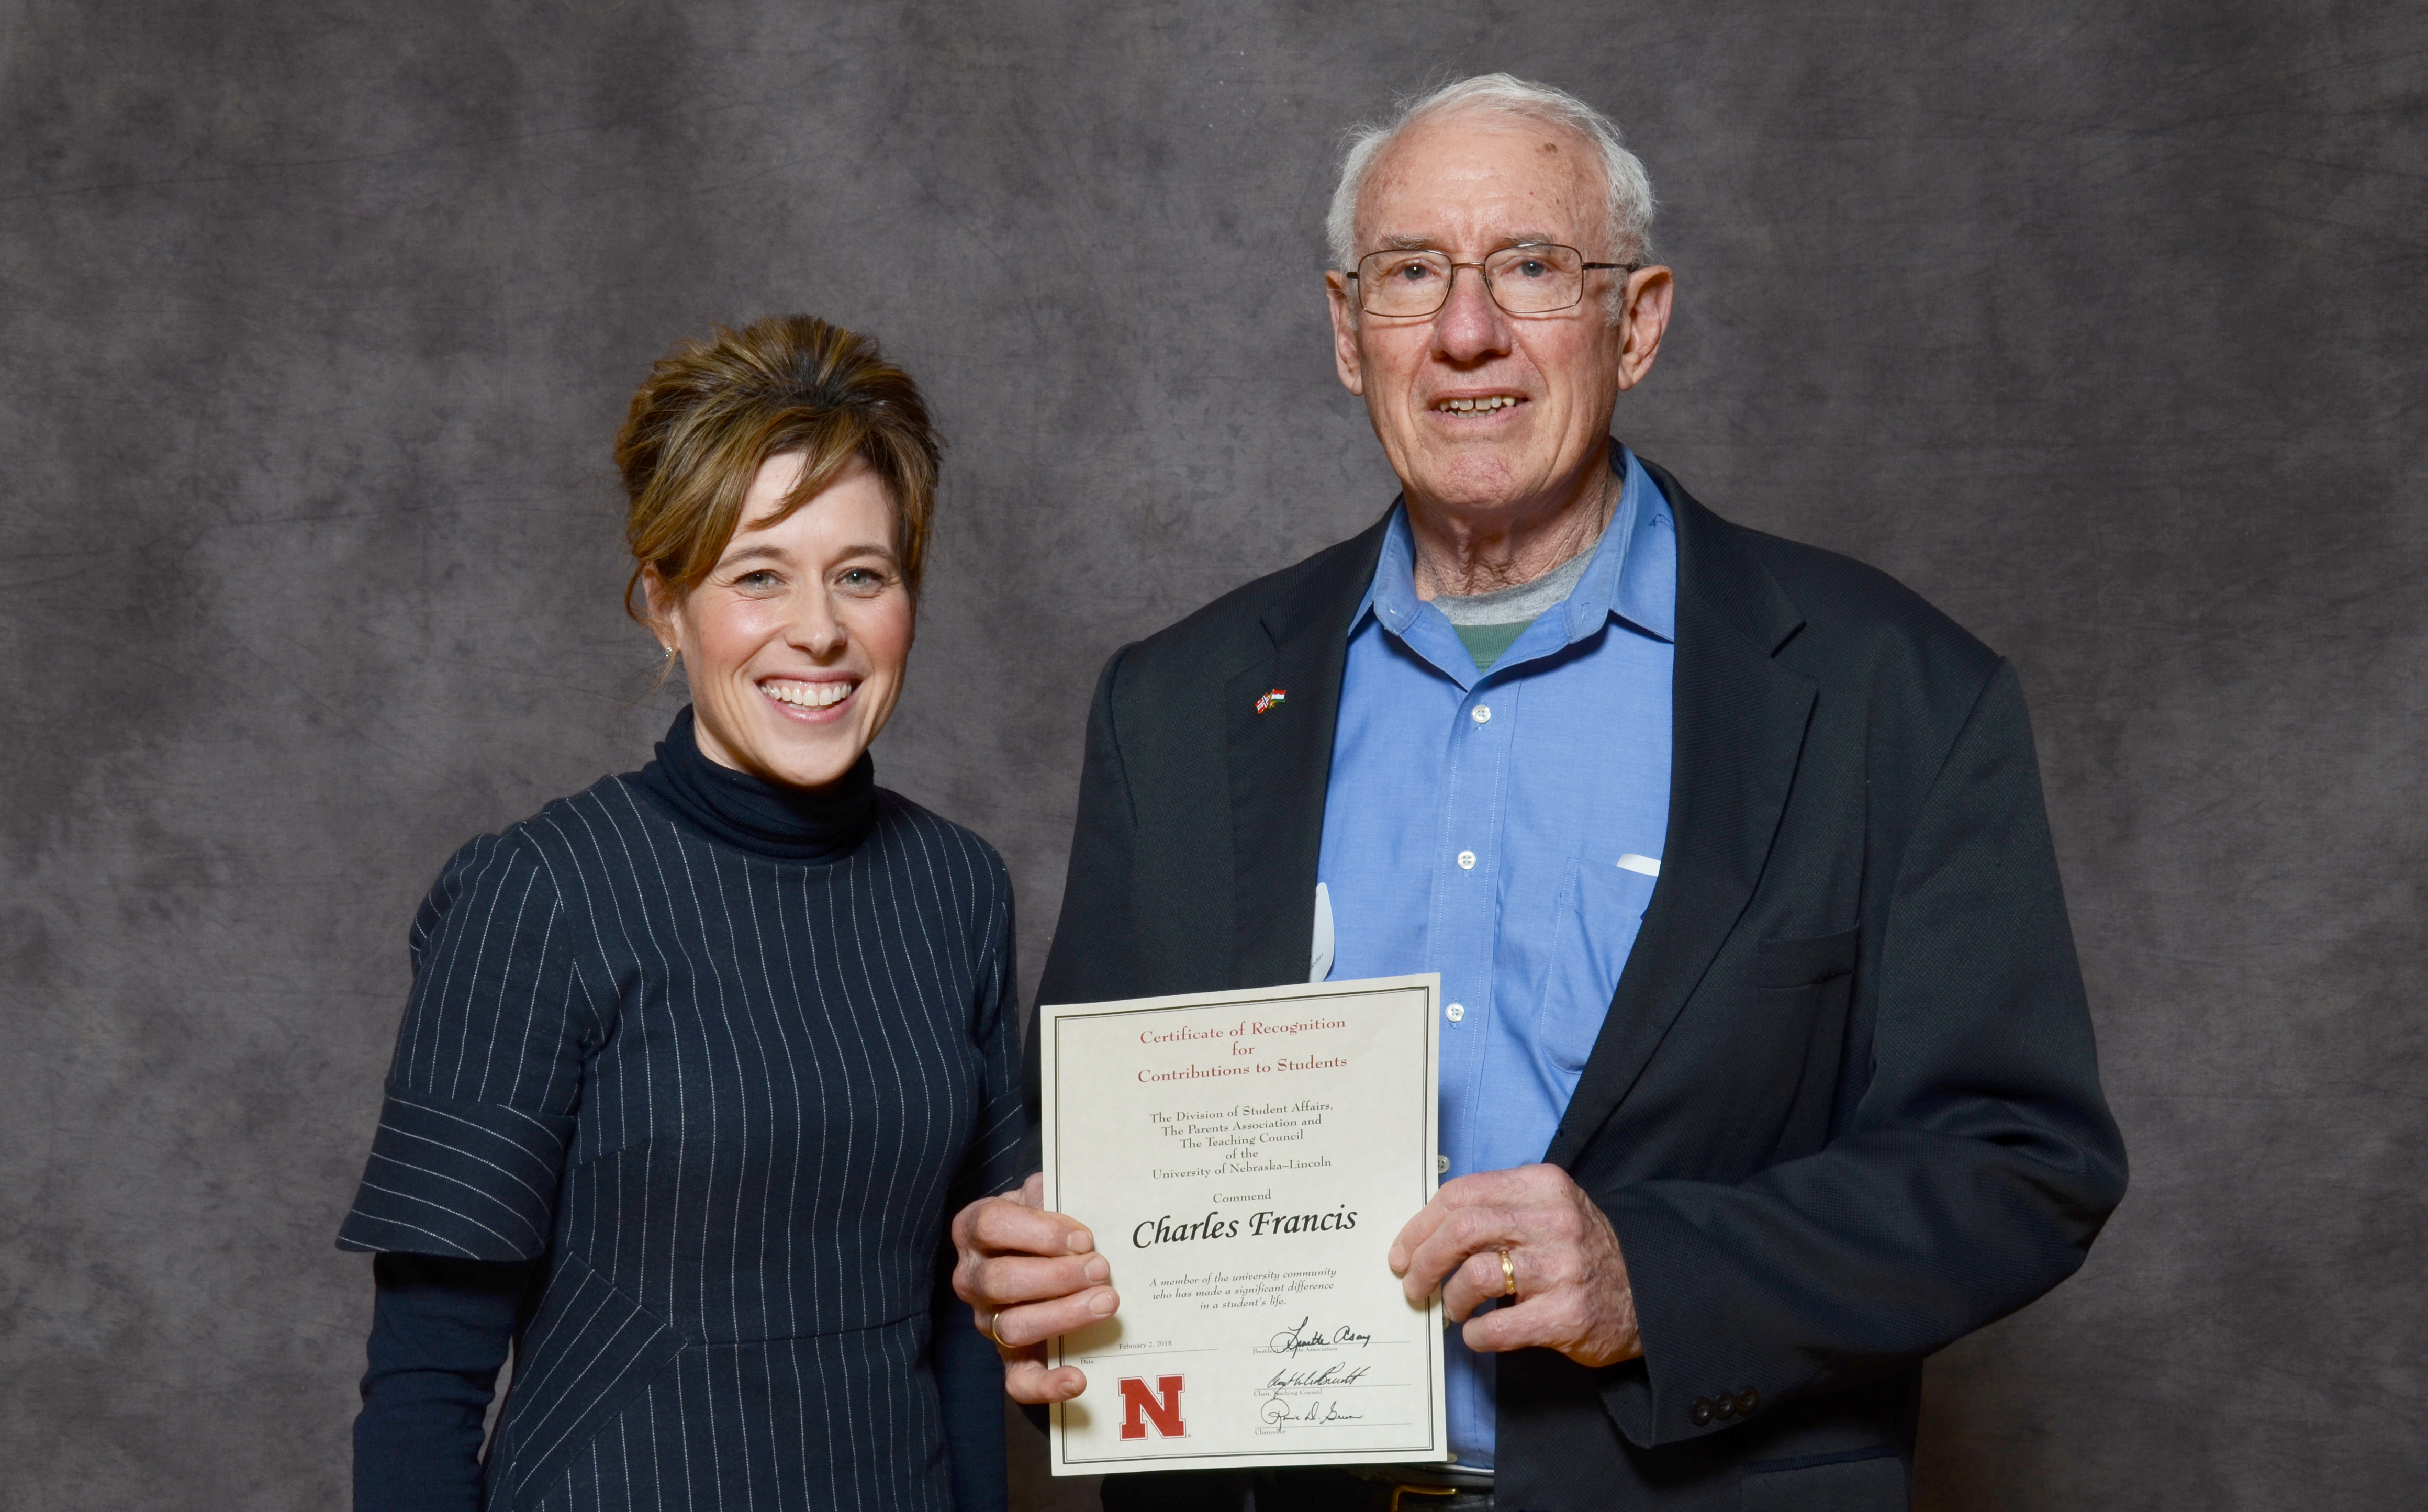 Charles Francis, right, accepts his Parents' Recognition Award from Tiffany Heng-Moss, dean of CASNR, during the Parents' Recognition Awards on Feb. 2. Five agronomy and horticulture faculty members were honored for their support of Nebraska students.